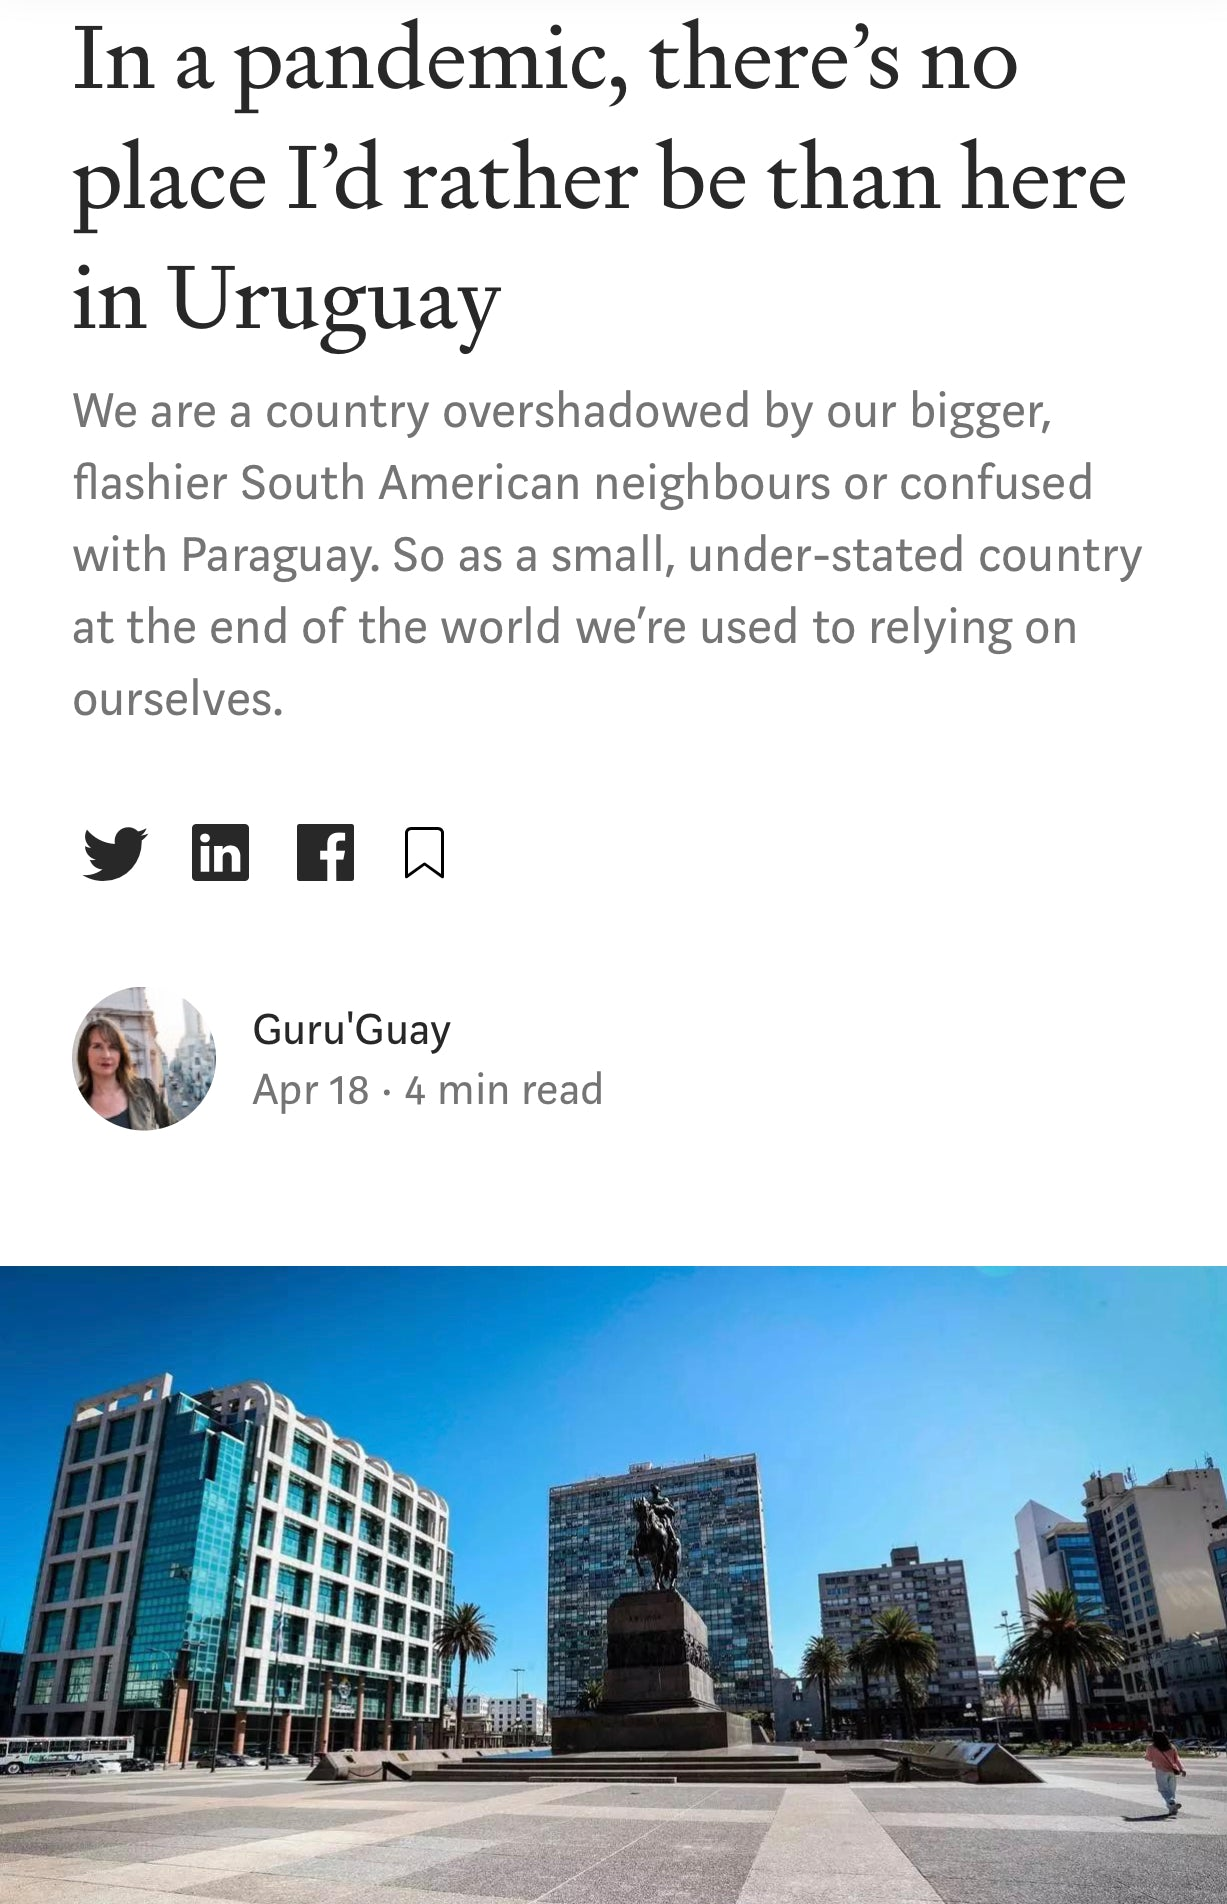 URUGUAY - An educated citizenry is a vital requisite for our survival as a free people.